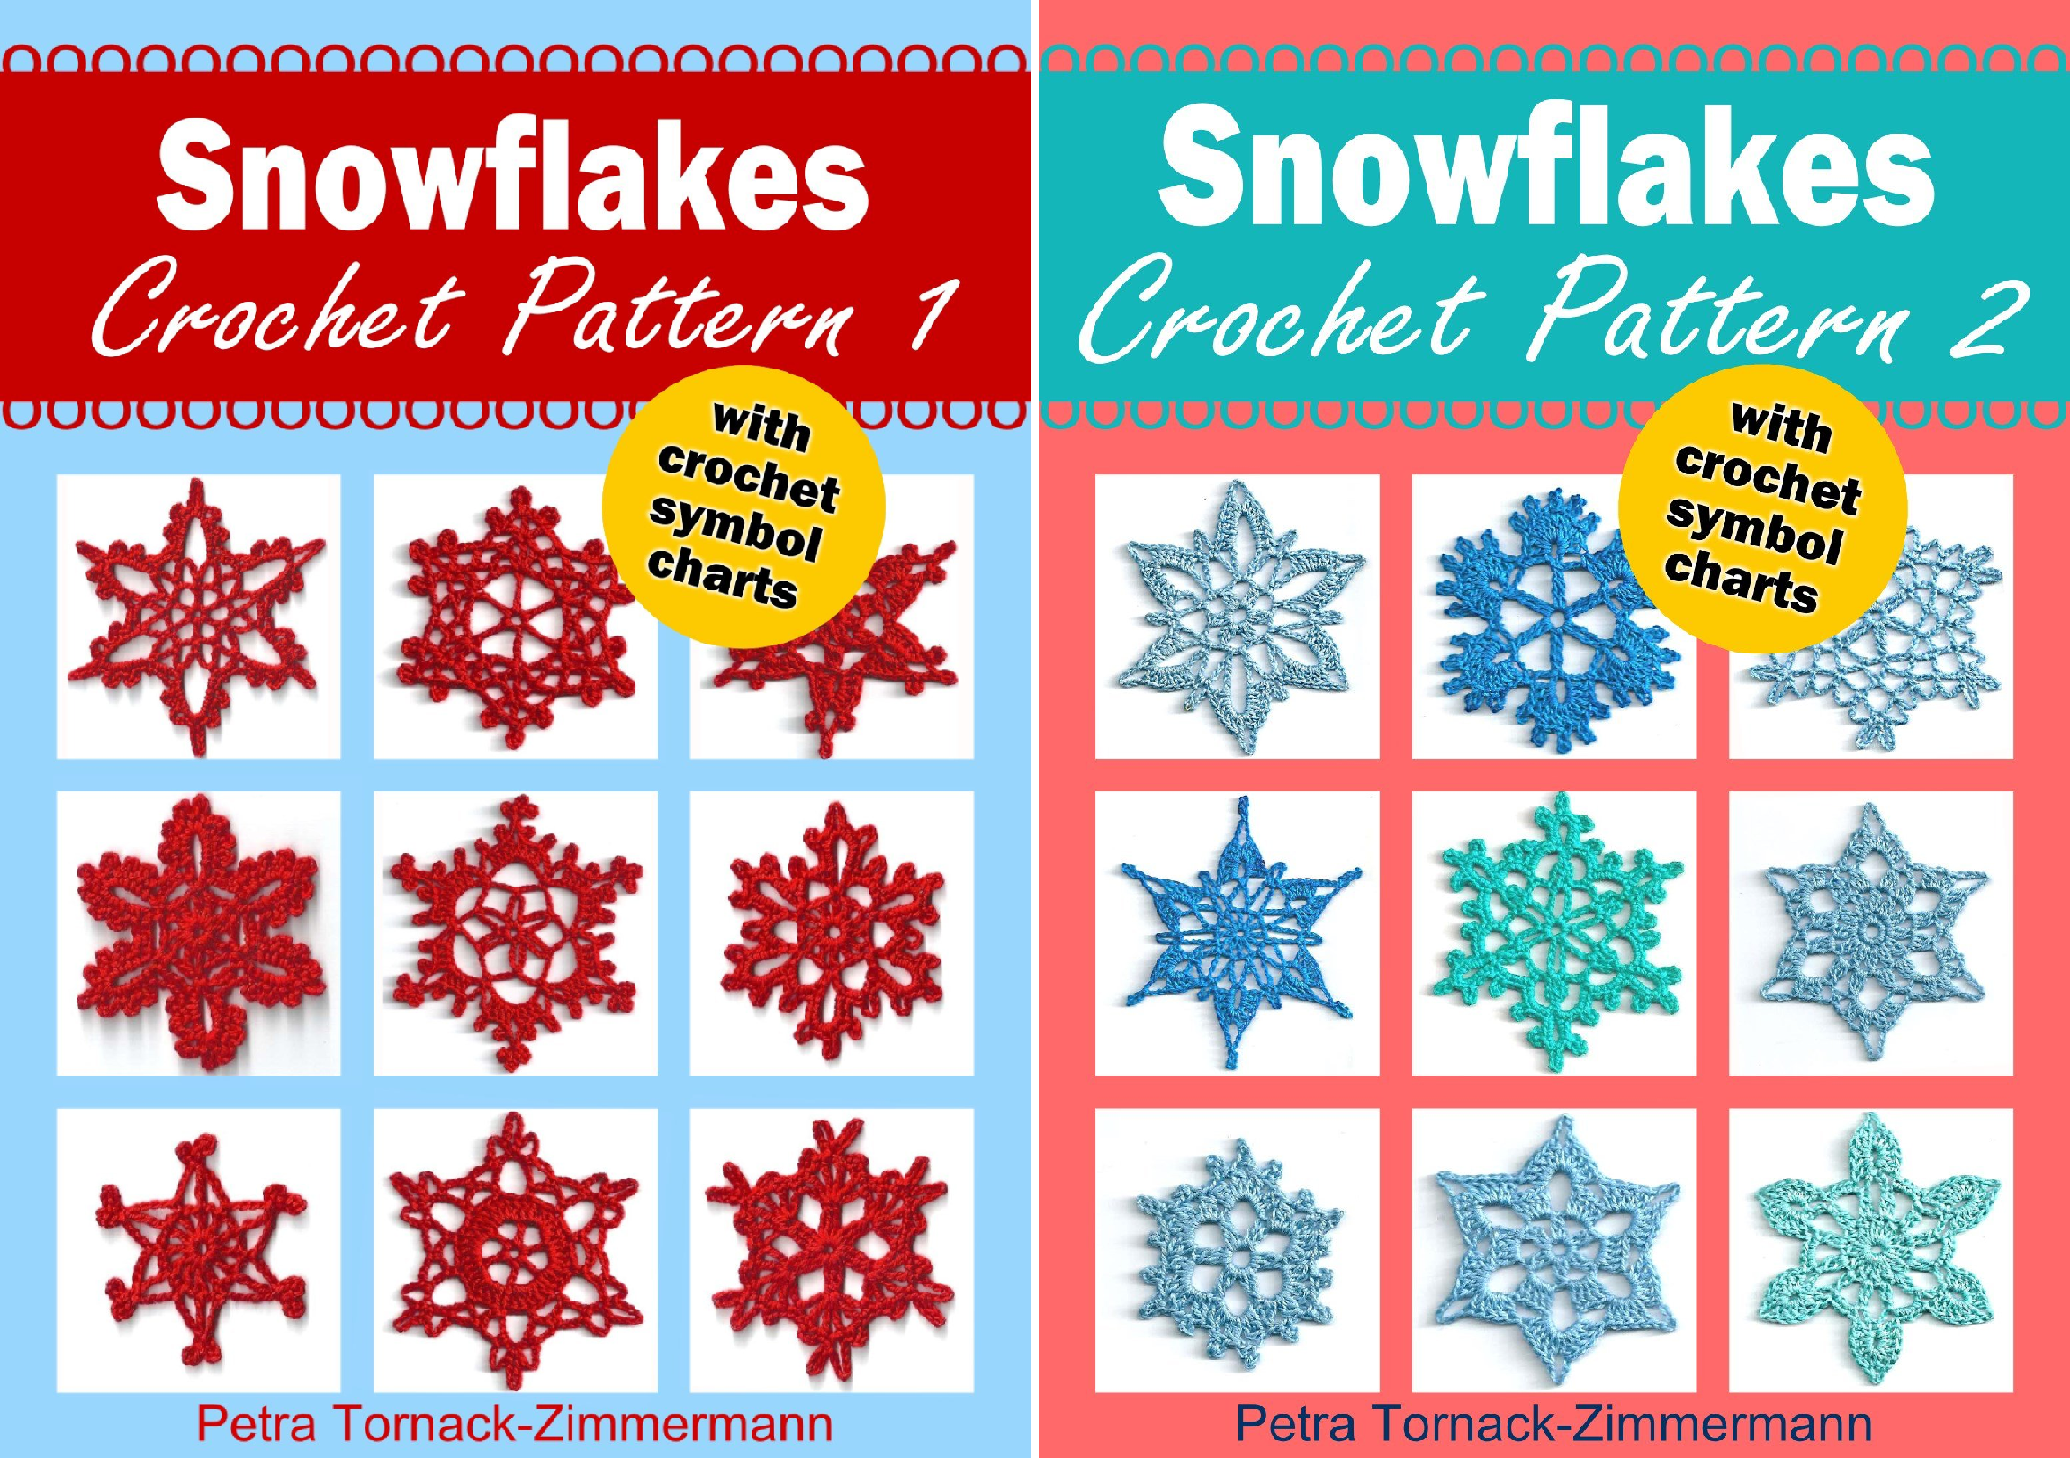 Snowflakes Crochet Pattern (2 Book Series)